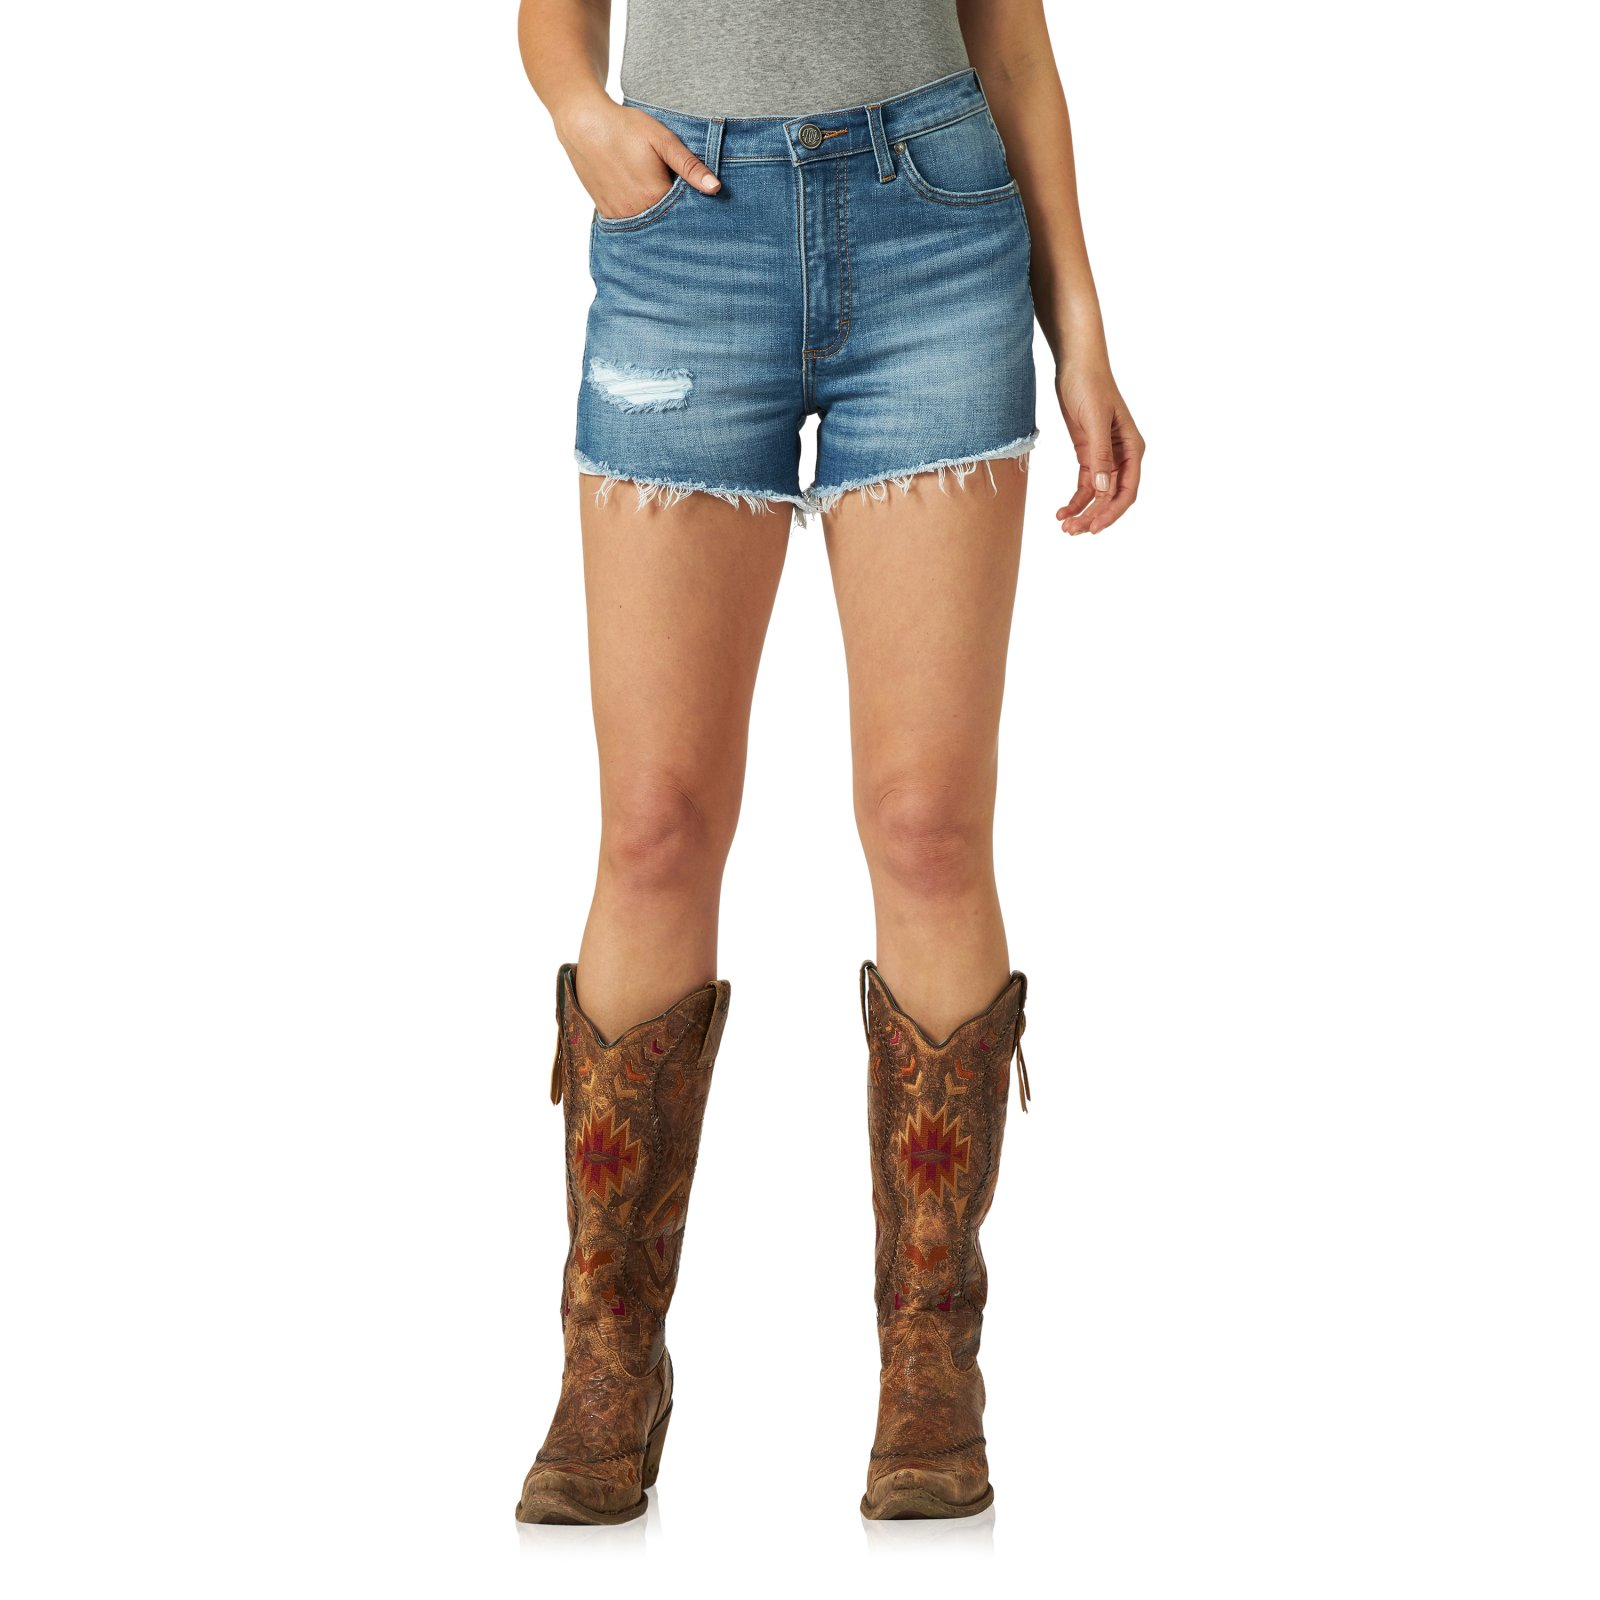 Wrangler Retro High Rise Short 0320